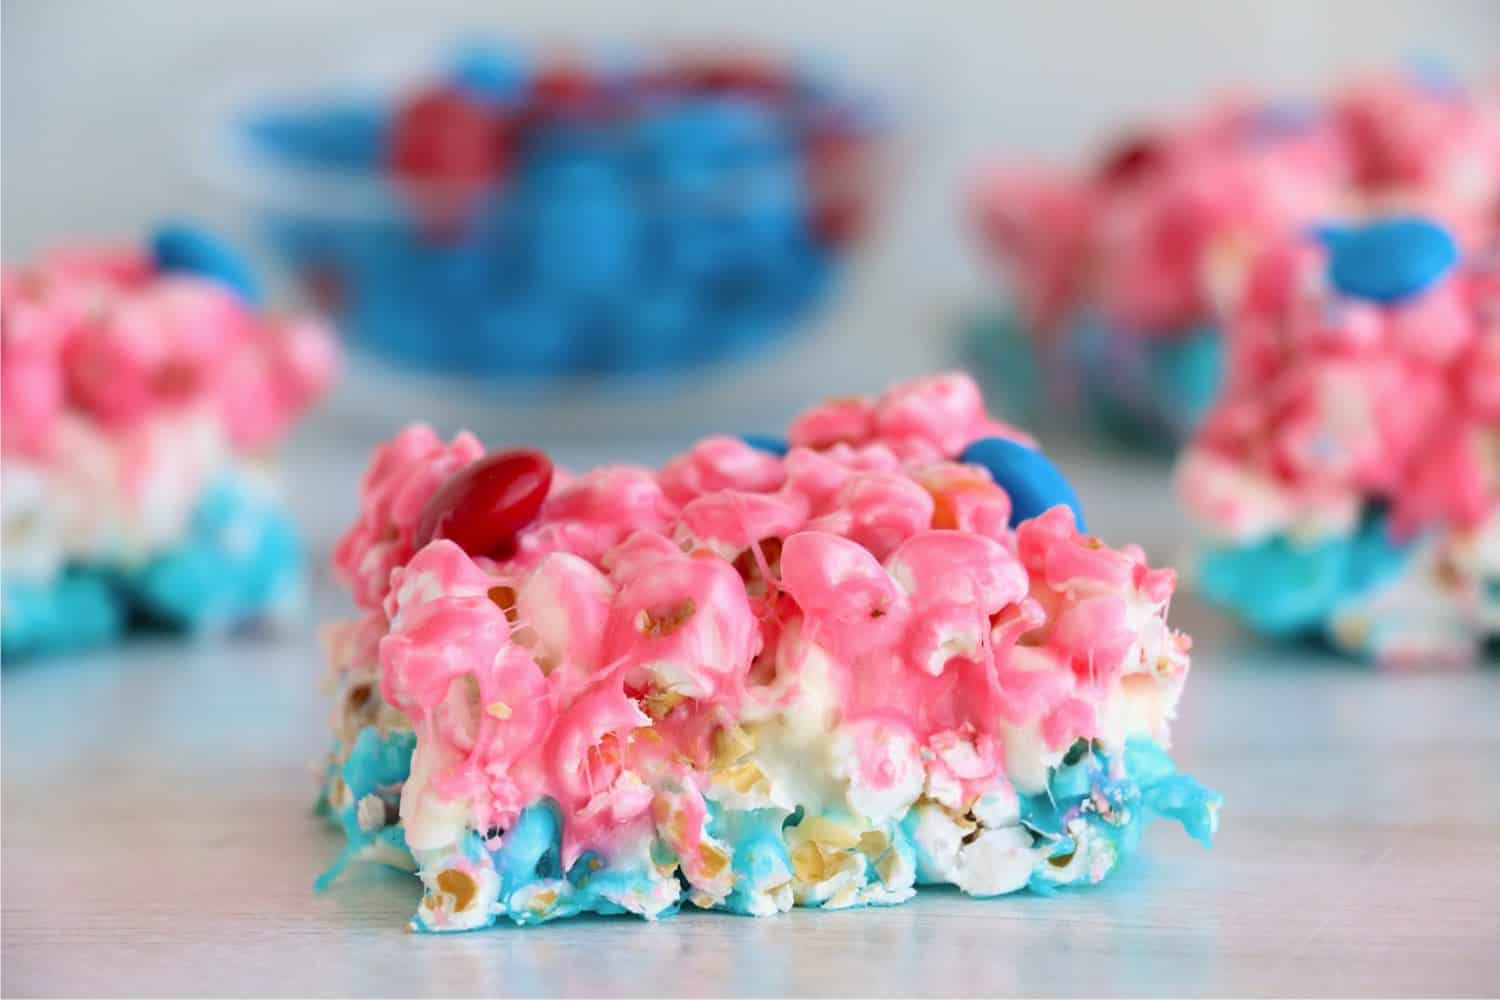 A piece of red, white, and blue popcorn cake is in focus in the foreground while other pieces of cake are displayed in a checkboard pattern in the blurry background